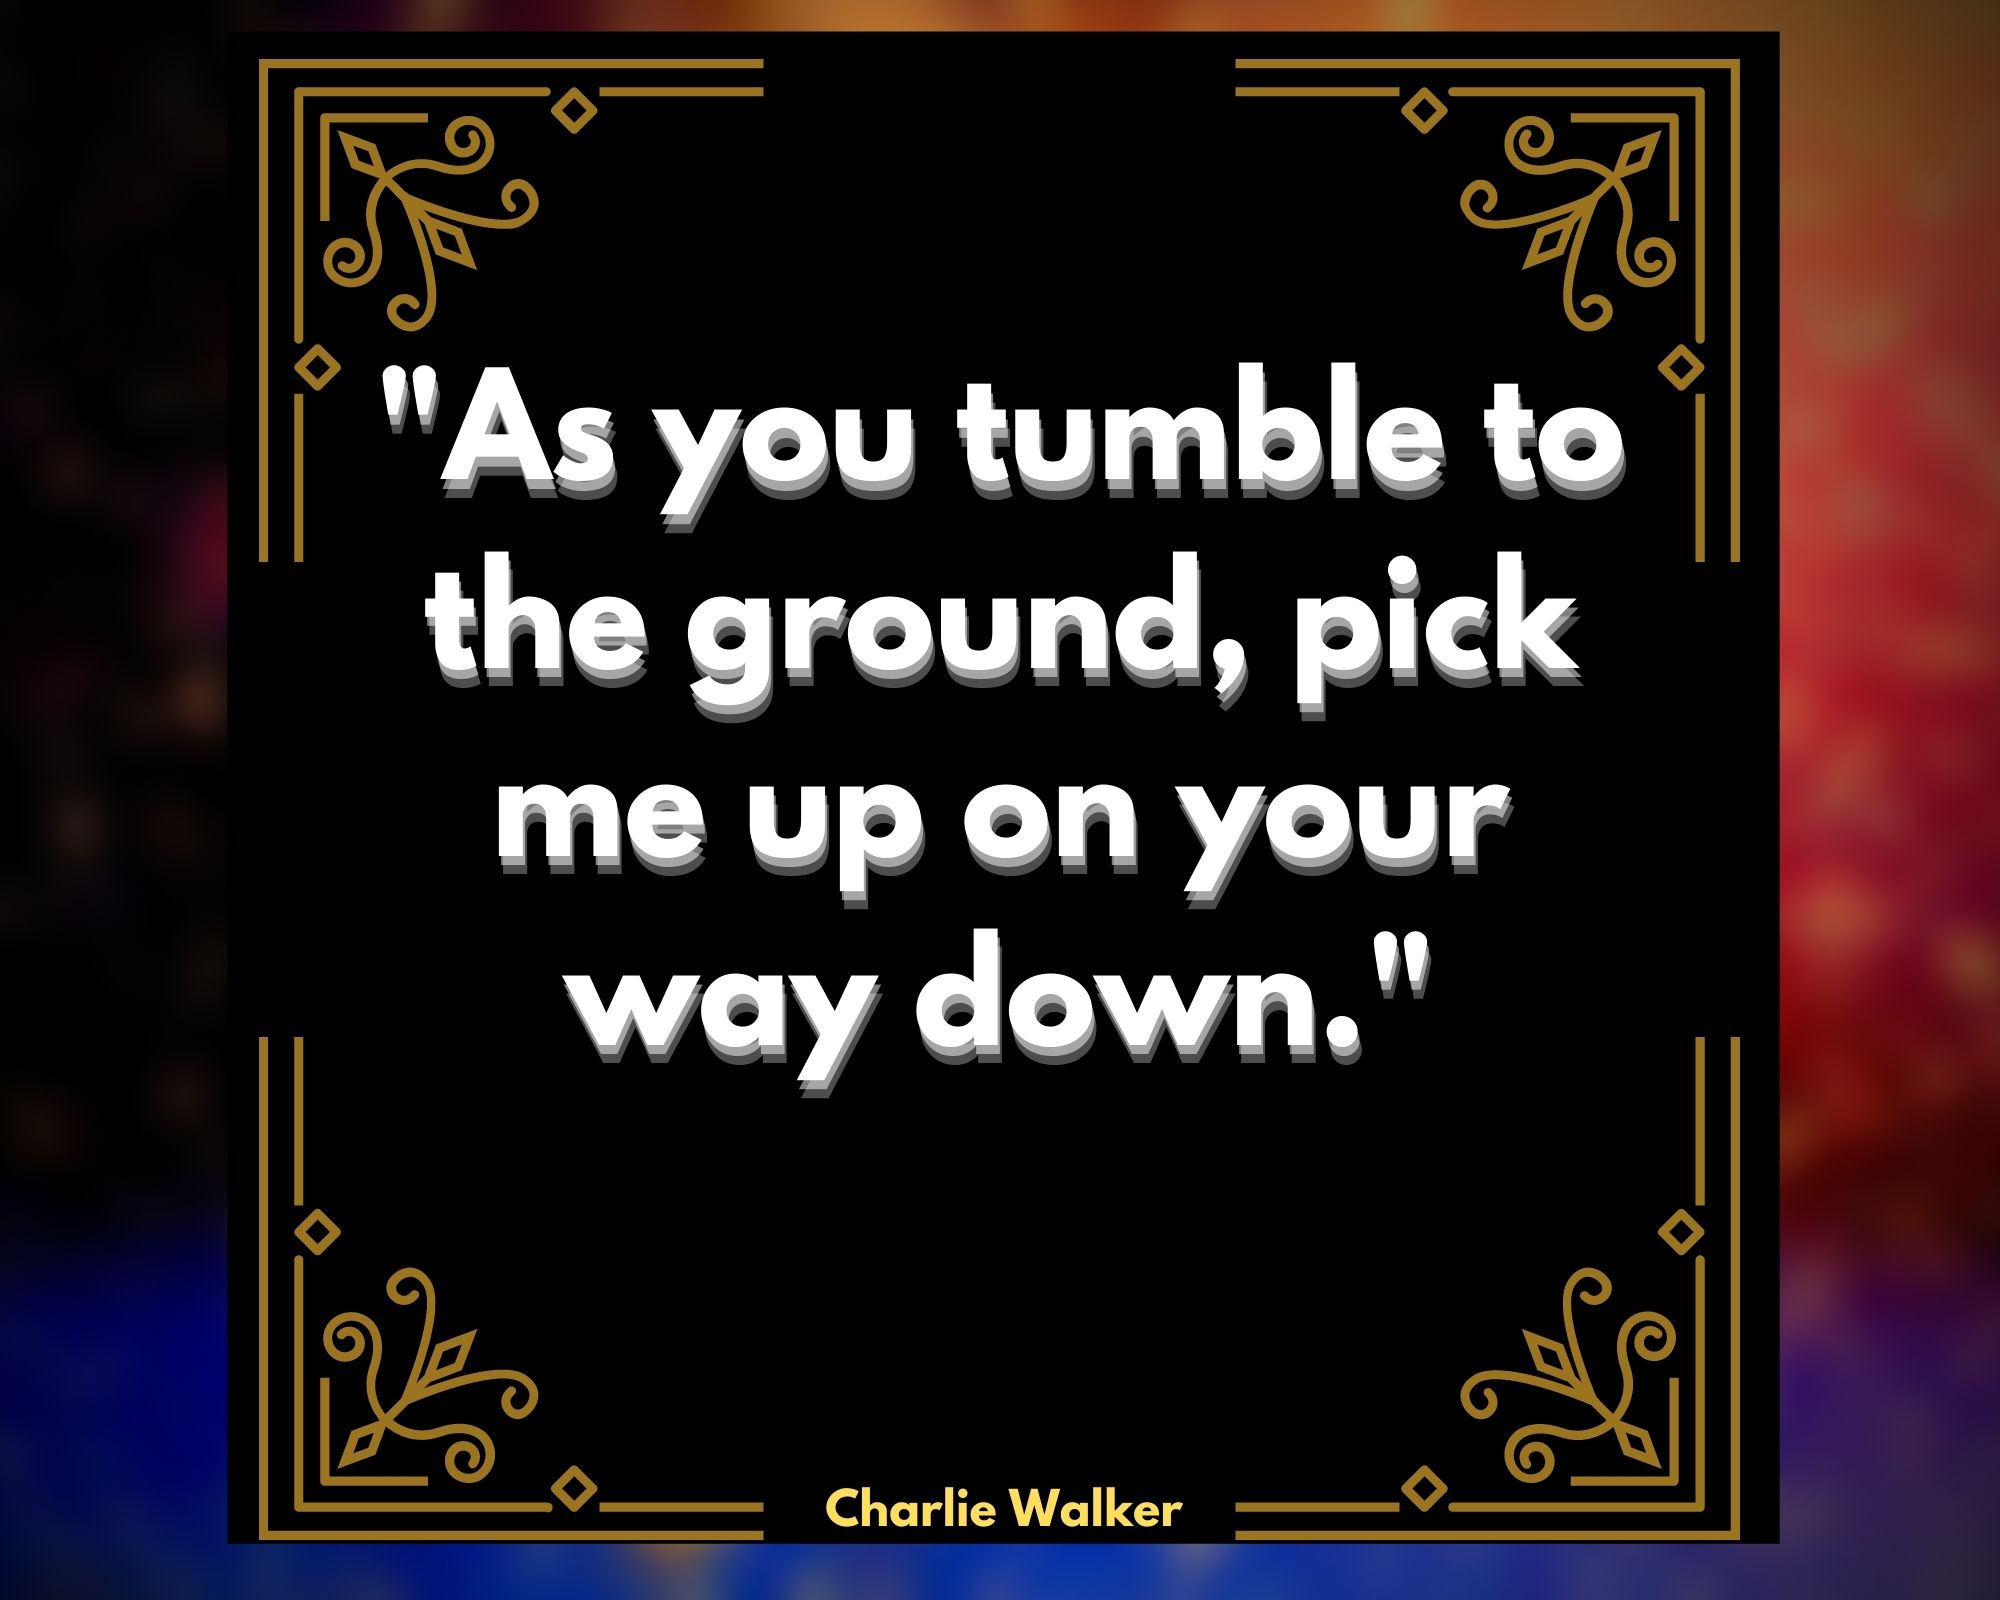 Quotes by Charlie Walker